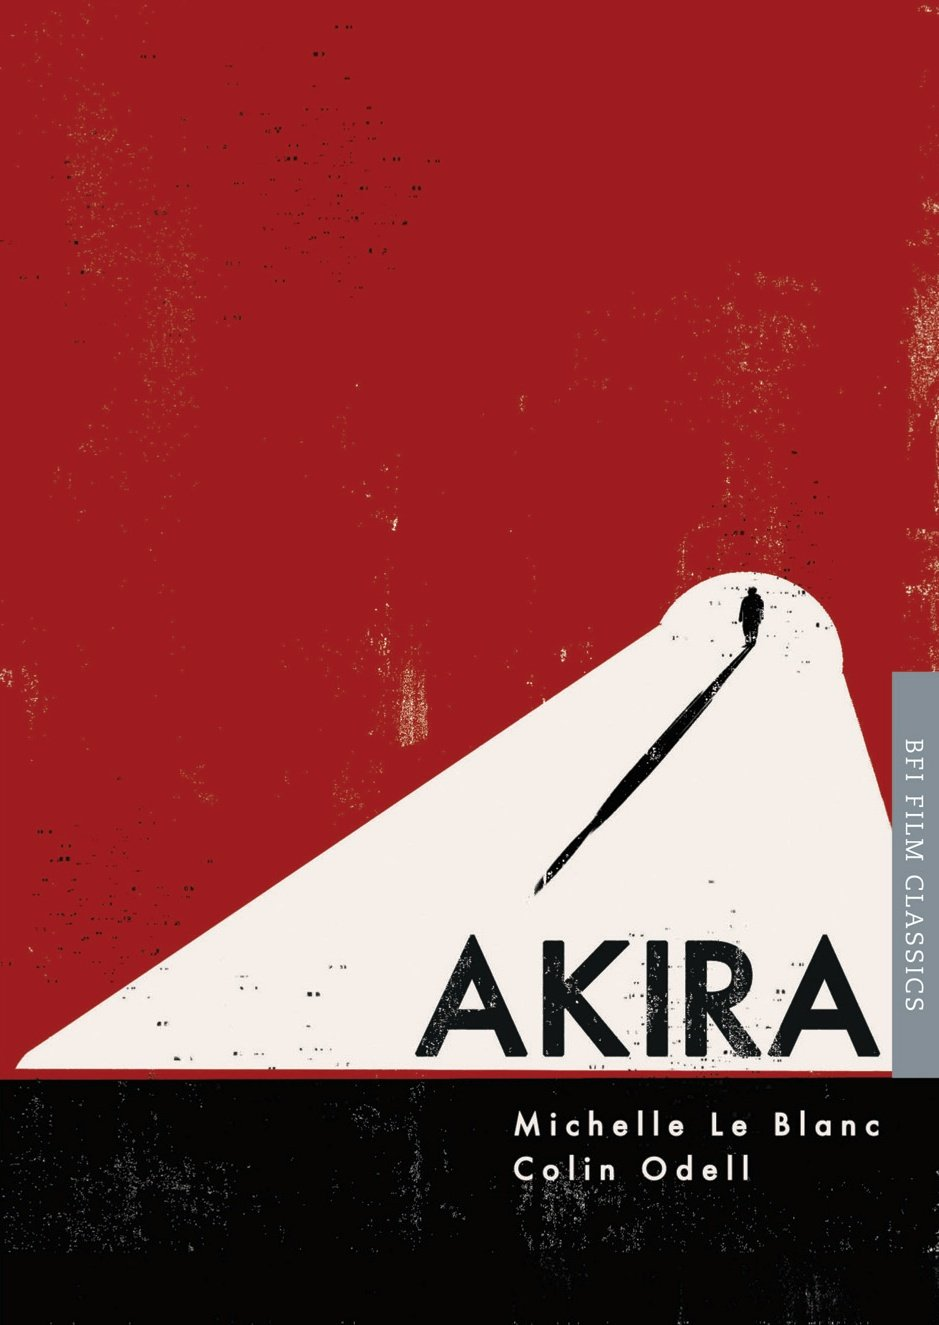 BFI Film Classics cover for Akira